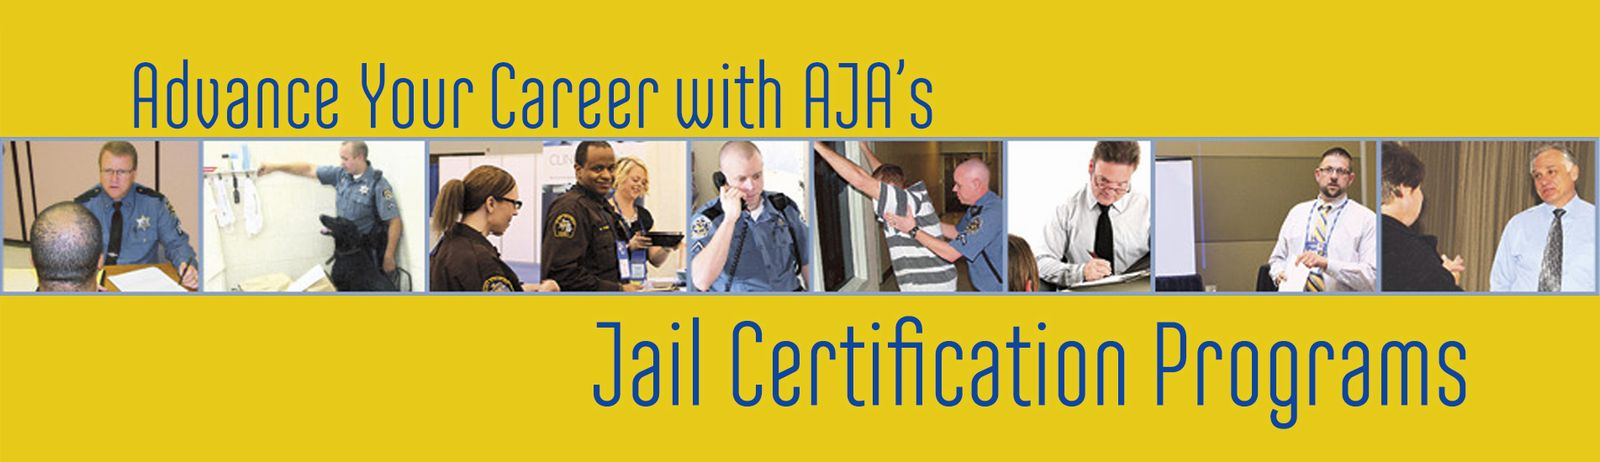 american jail association - photo #17